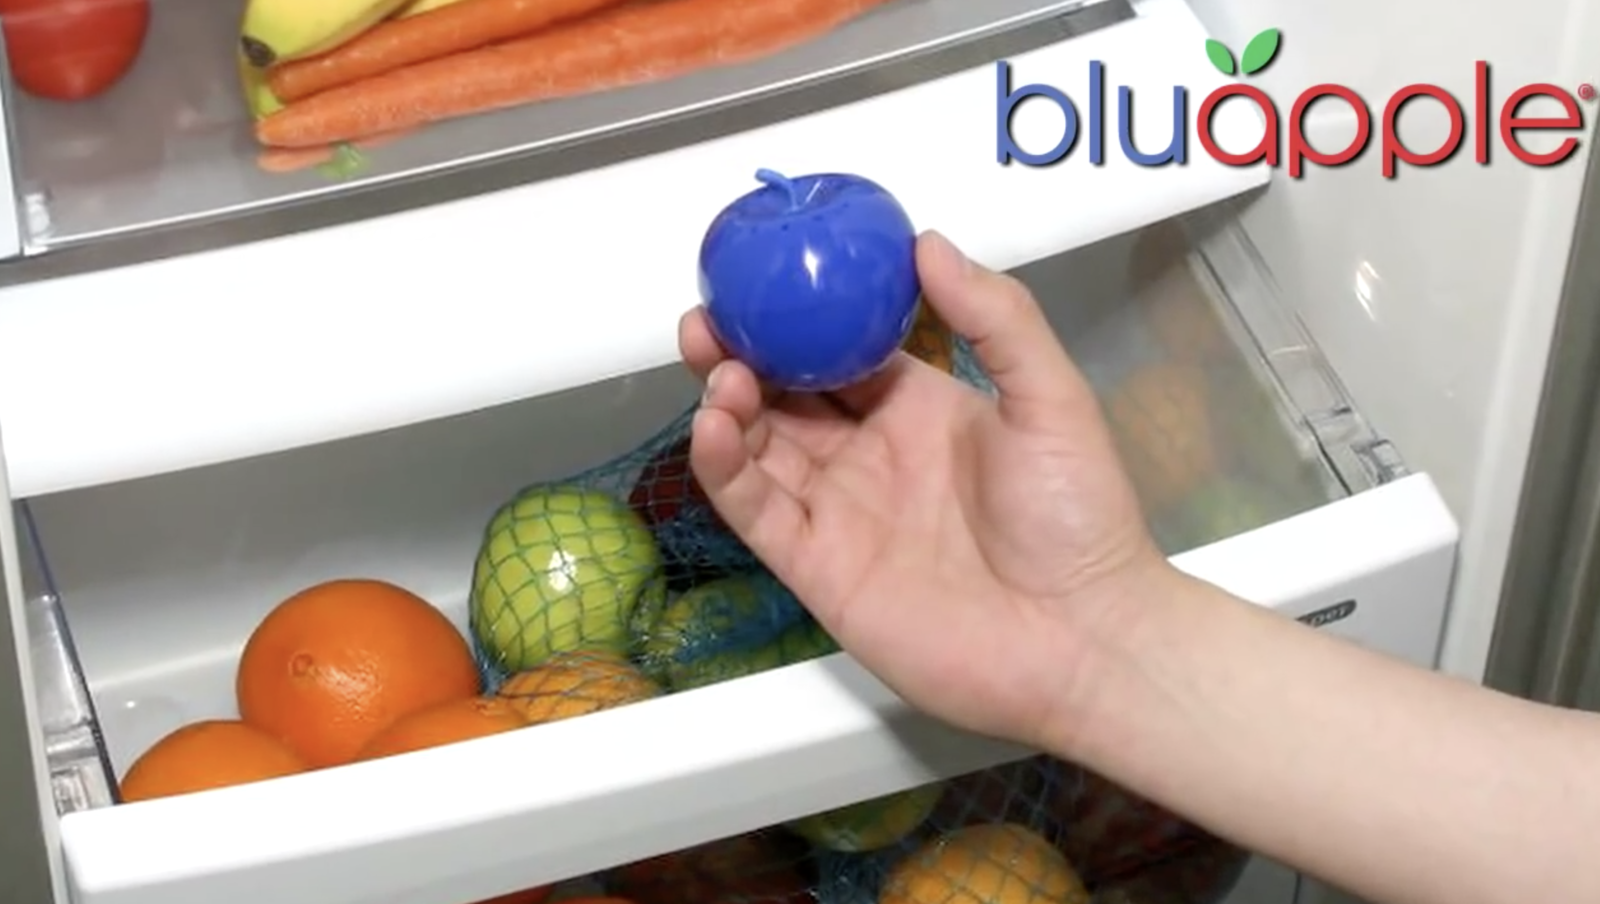 A hand holding the blue apple-shaped product above a fridge drawer full of produce